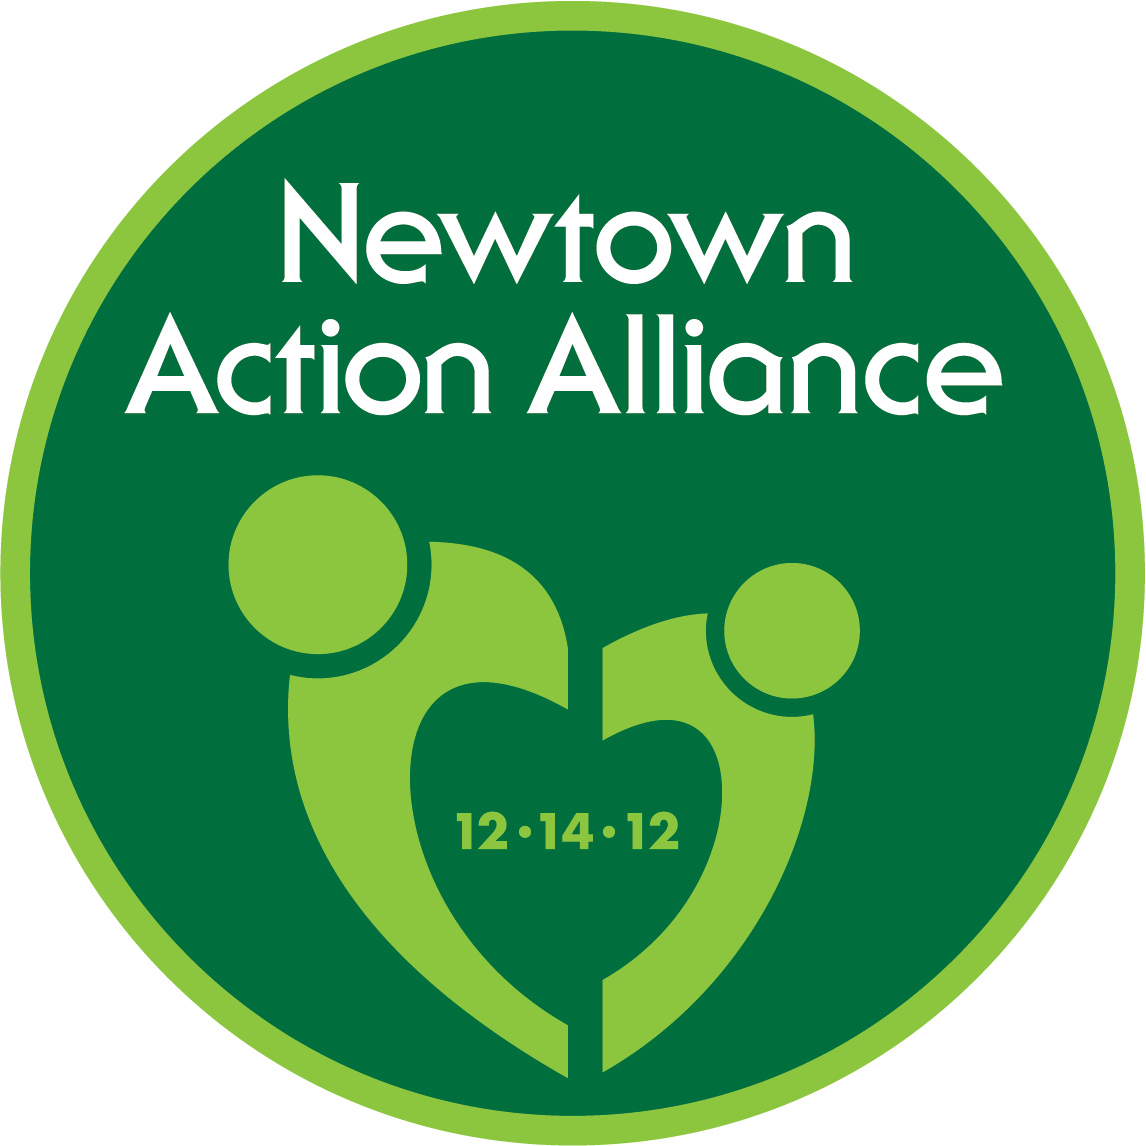 Newtown Action Alliance